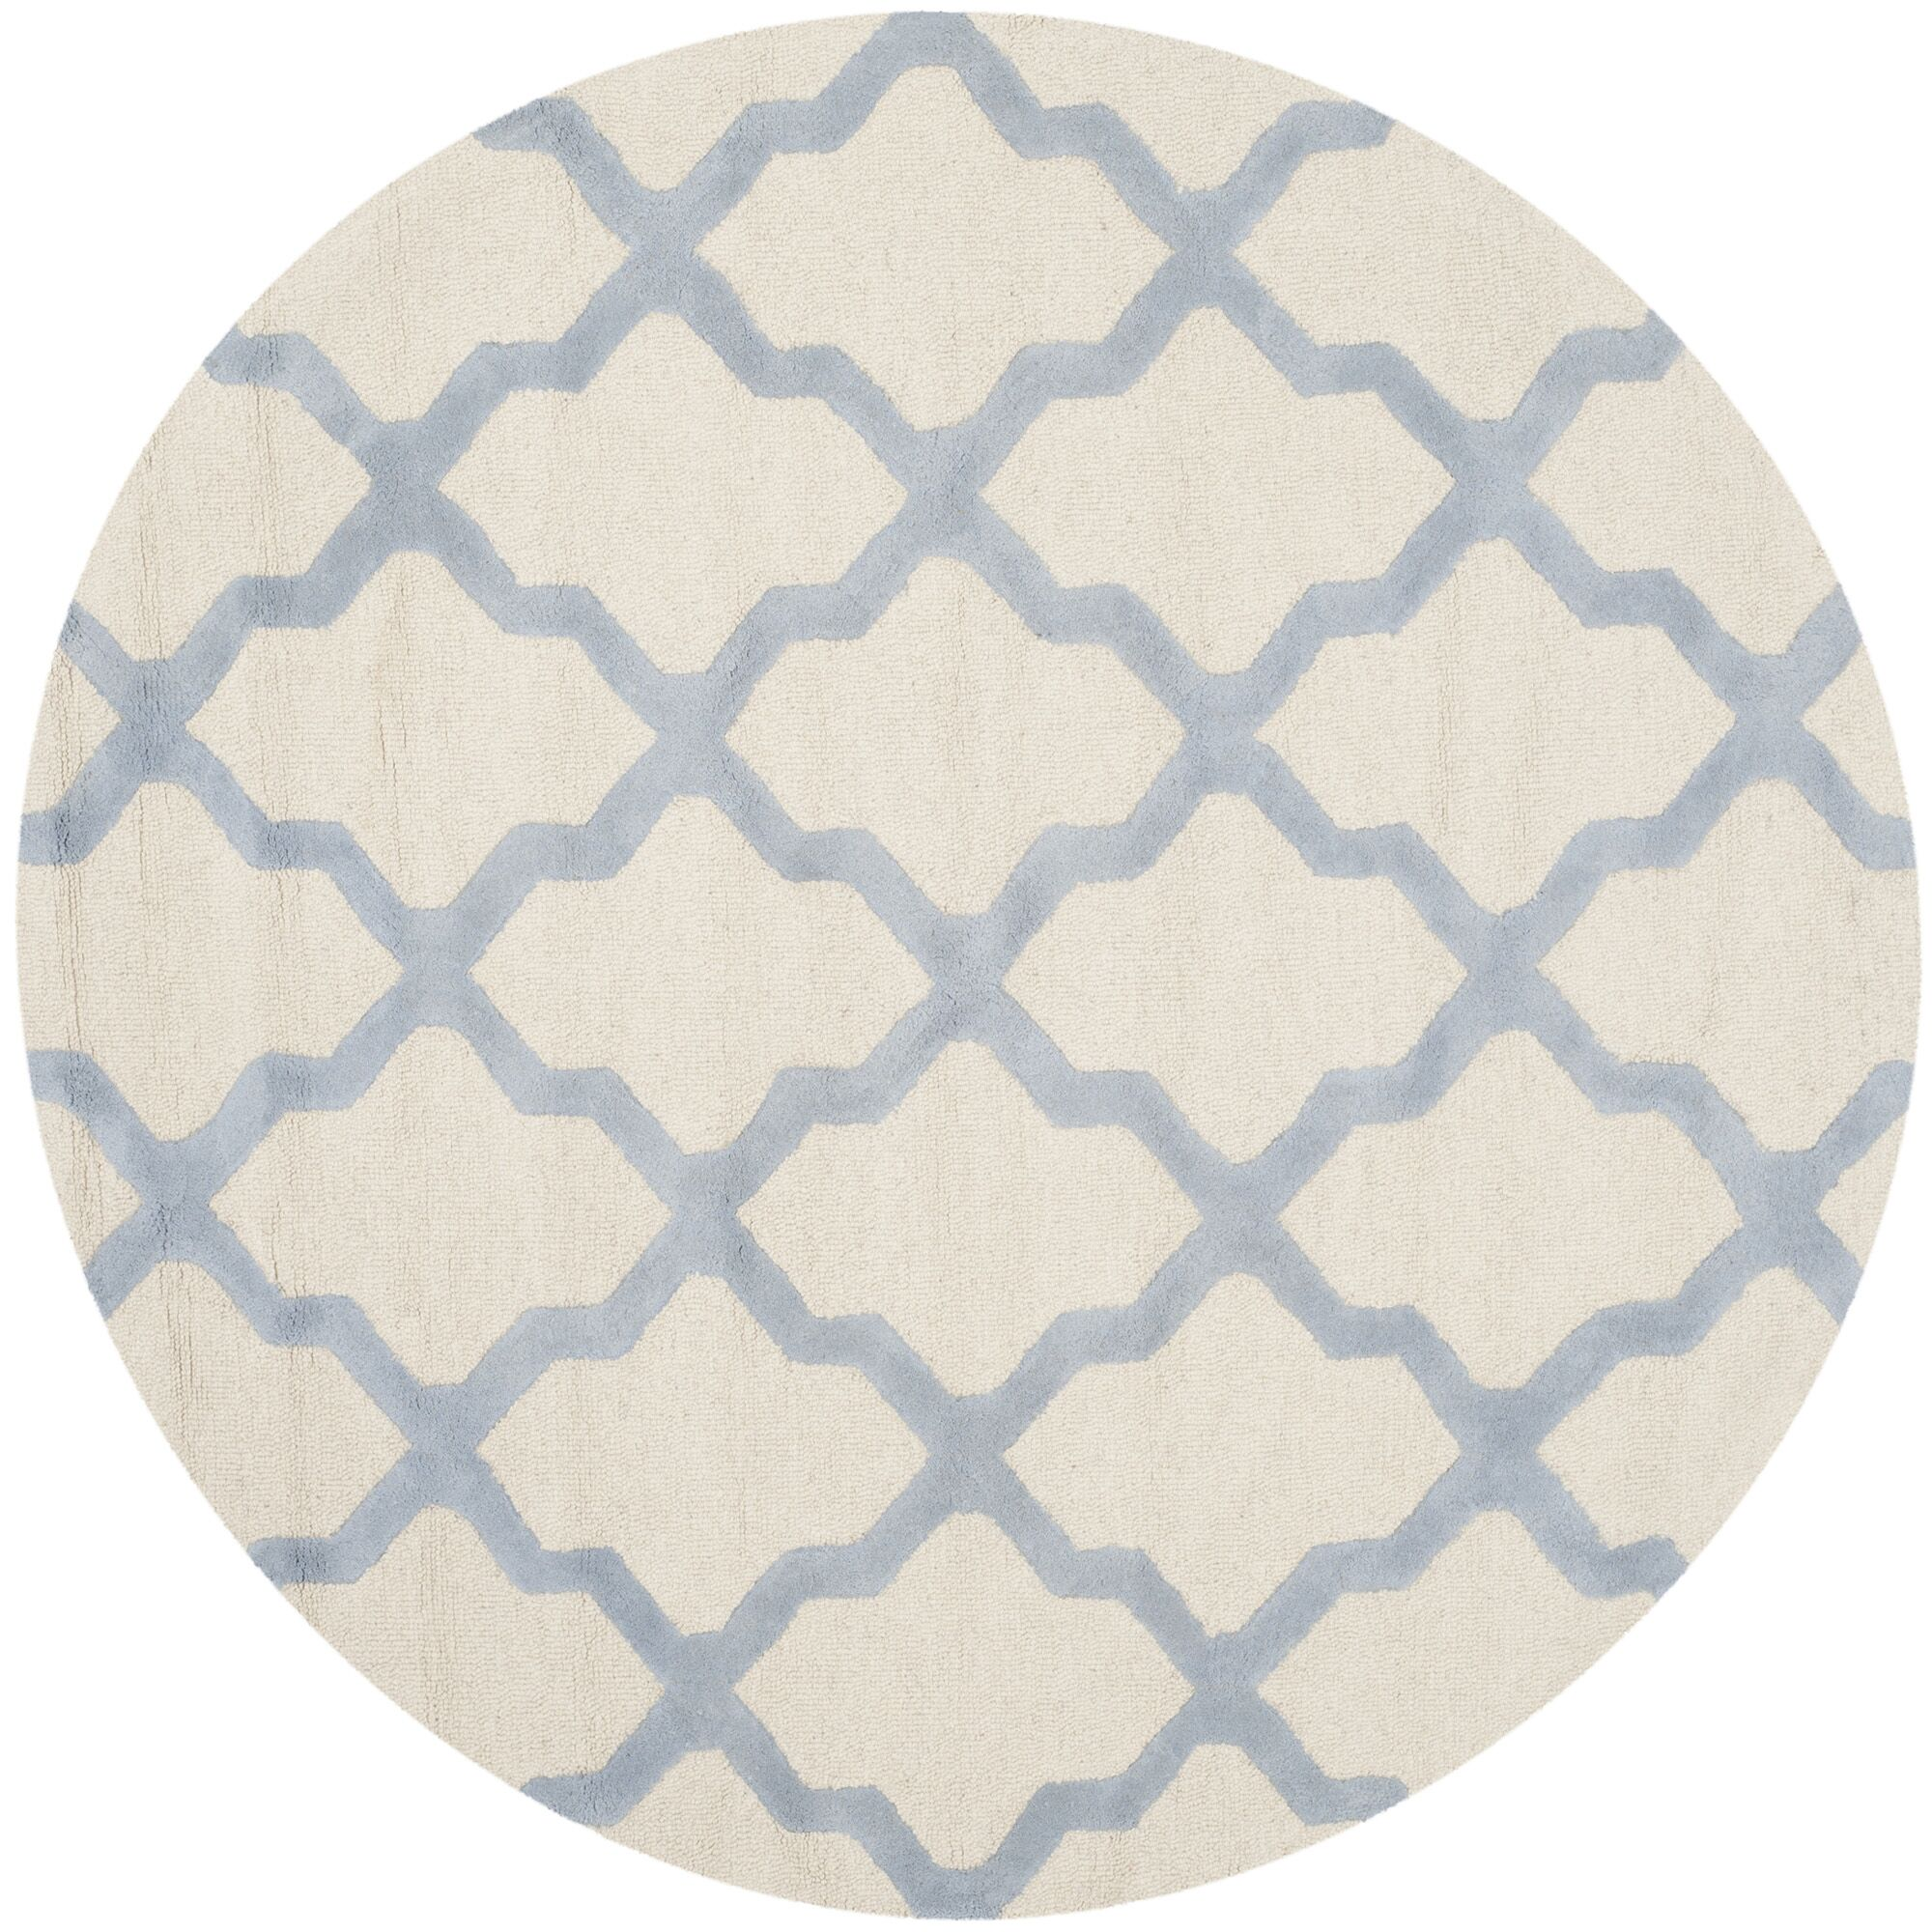 Charlenne Hand-Tufted Ivory/Gray Area Rug Rug Size: Round 6'